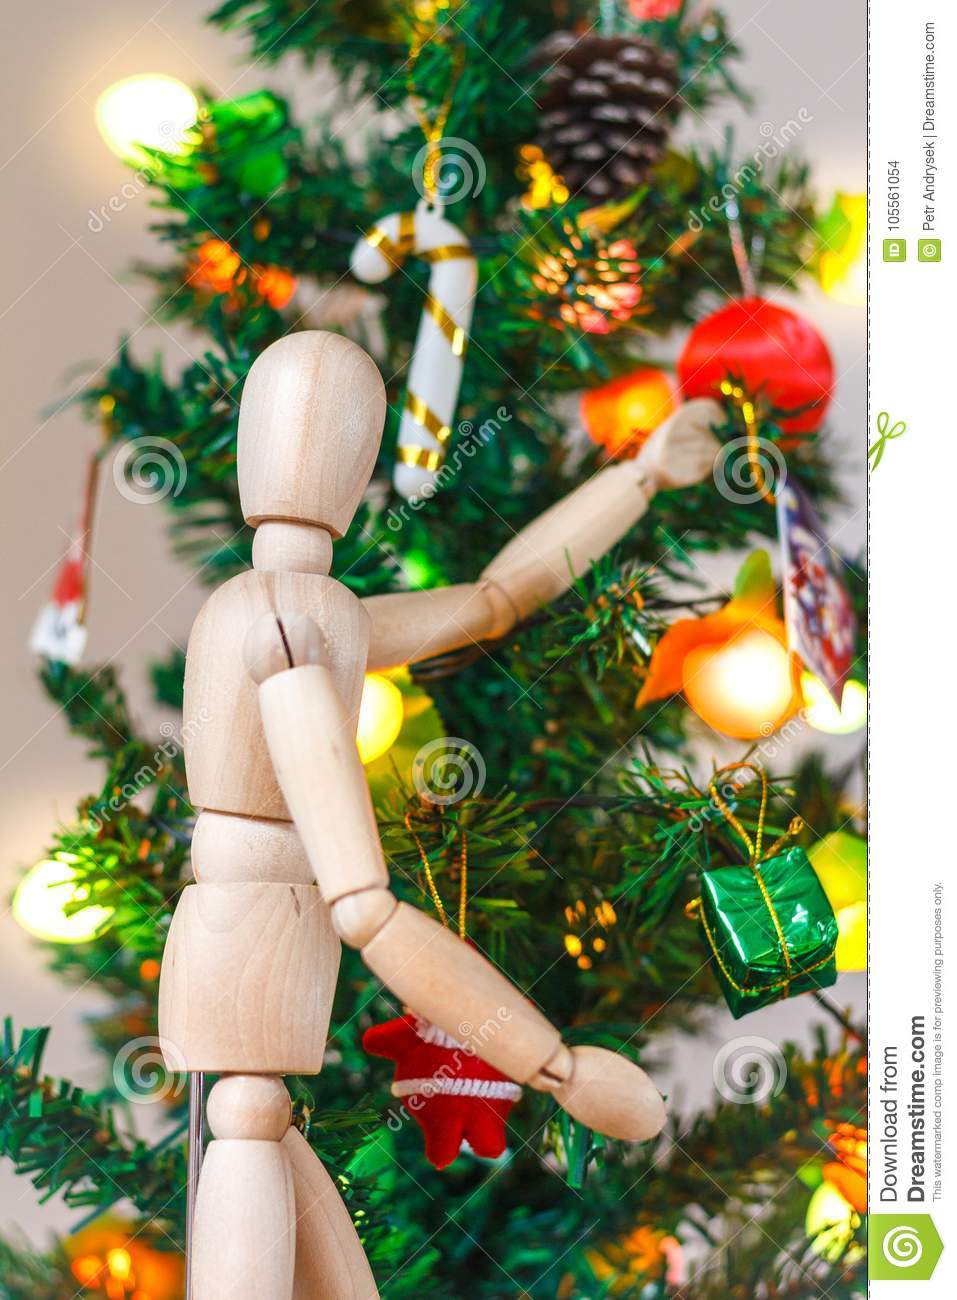 Wooden Mannequin Decorating Xmas Tree Stock Photo Image Of